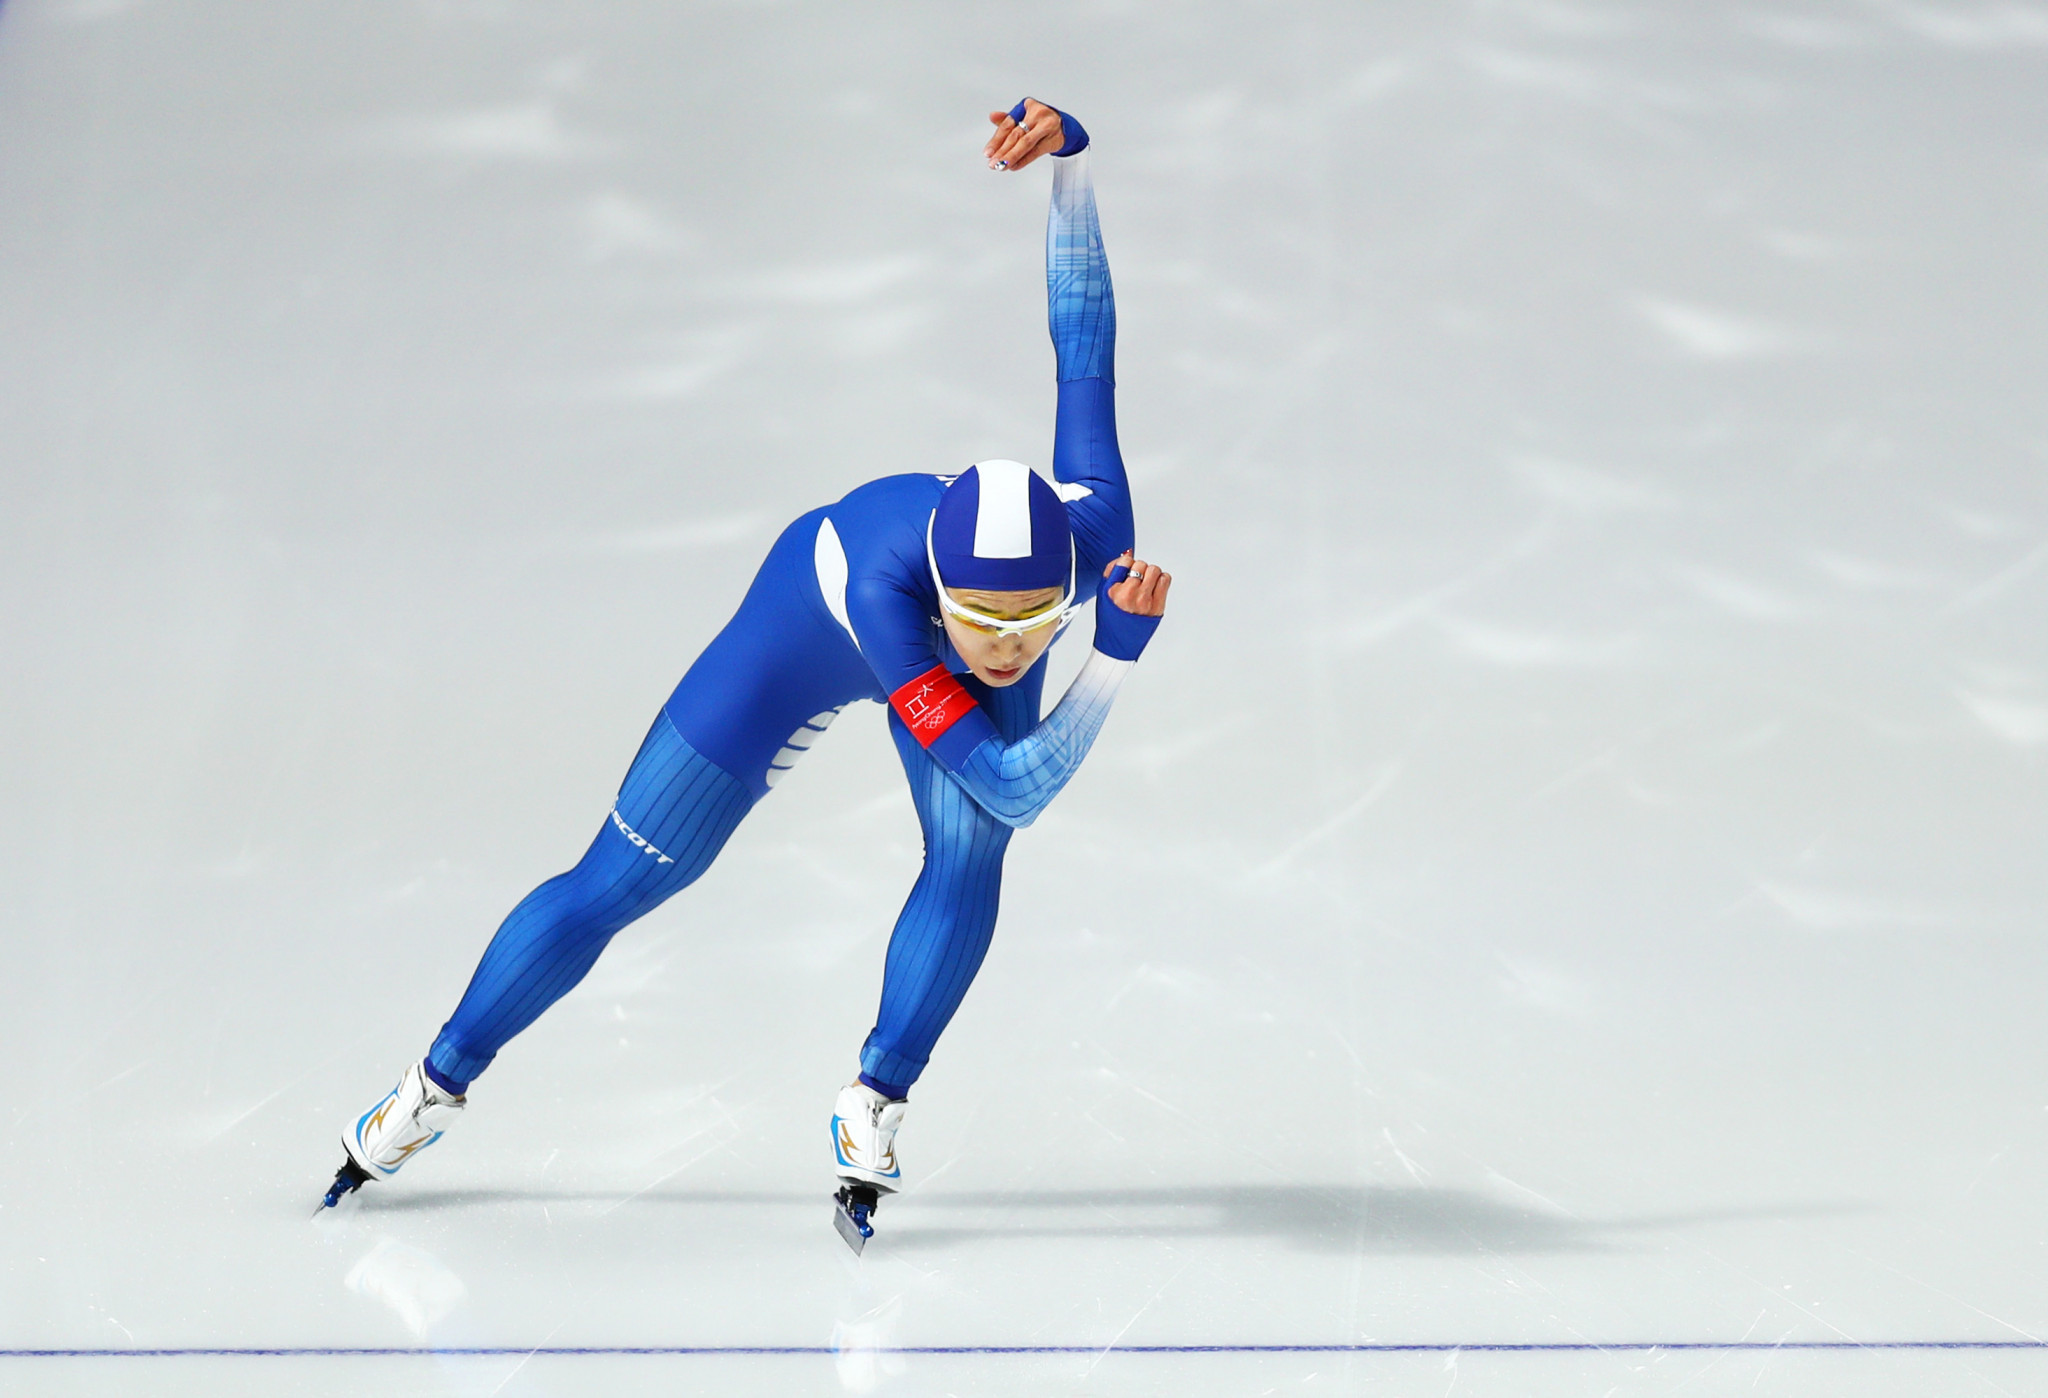 Two-time Olympic champion speed skater Lee set to retire